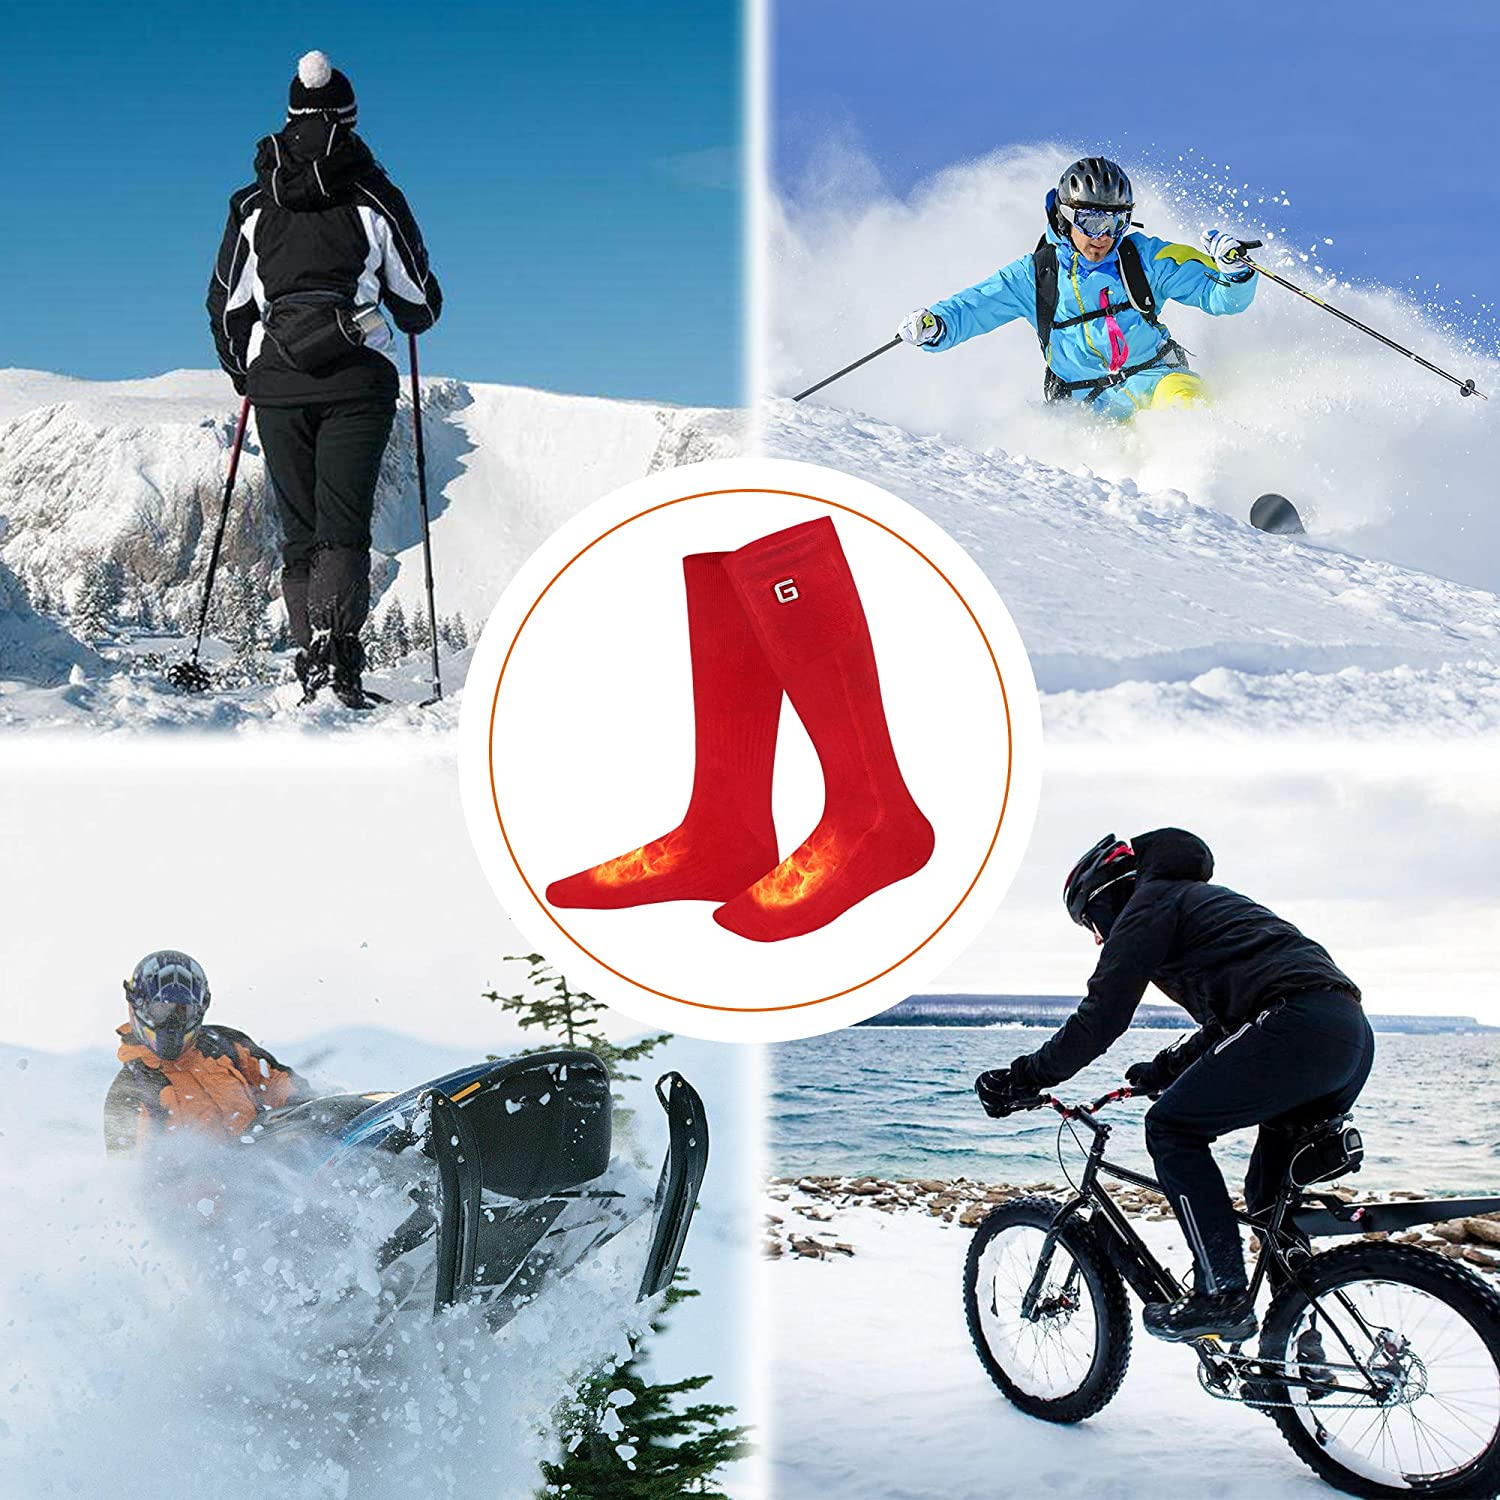 SVPRO Rechargeable Electric Battery Heated Socks,Men Women Warm Heated Socks,Sport Outdoor Indoor Warm Winter Heated Socks,Thermal Heating Foot Warmer Care Chronically Cold Person